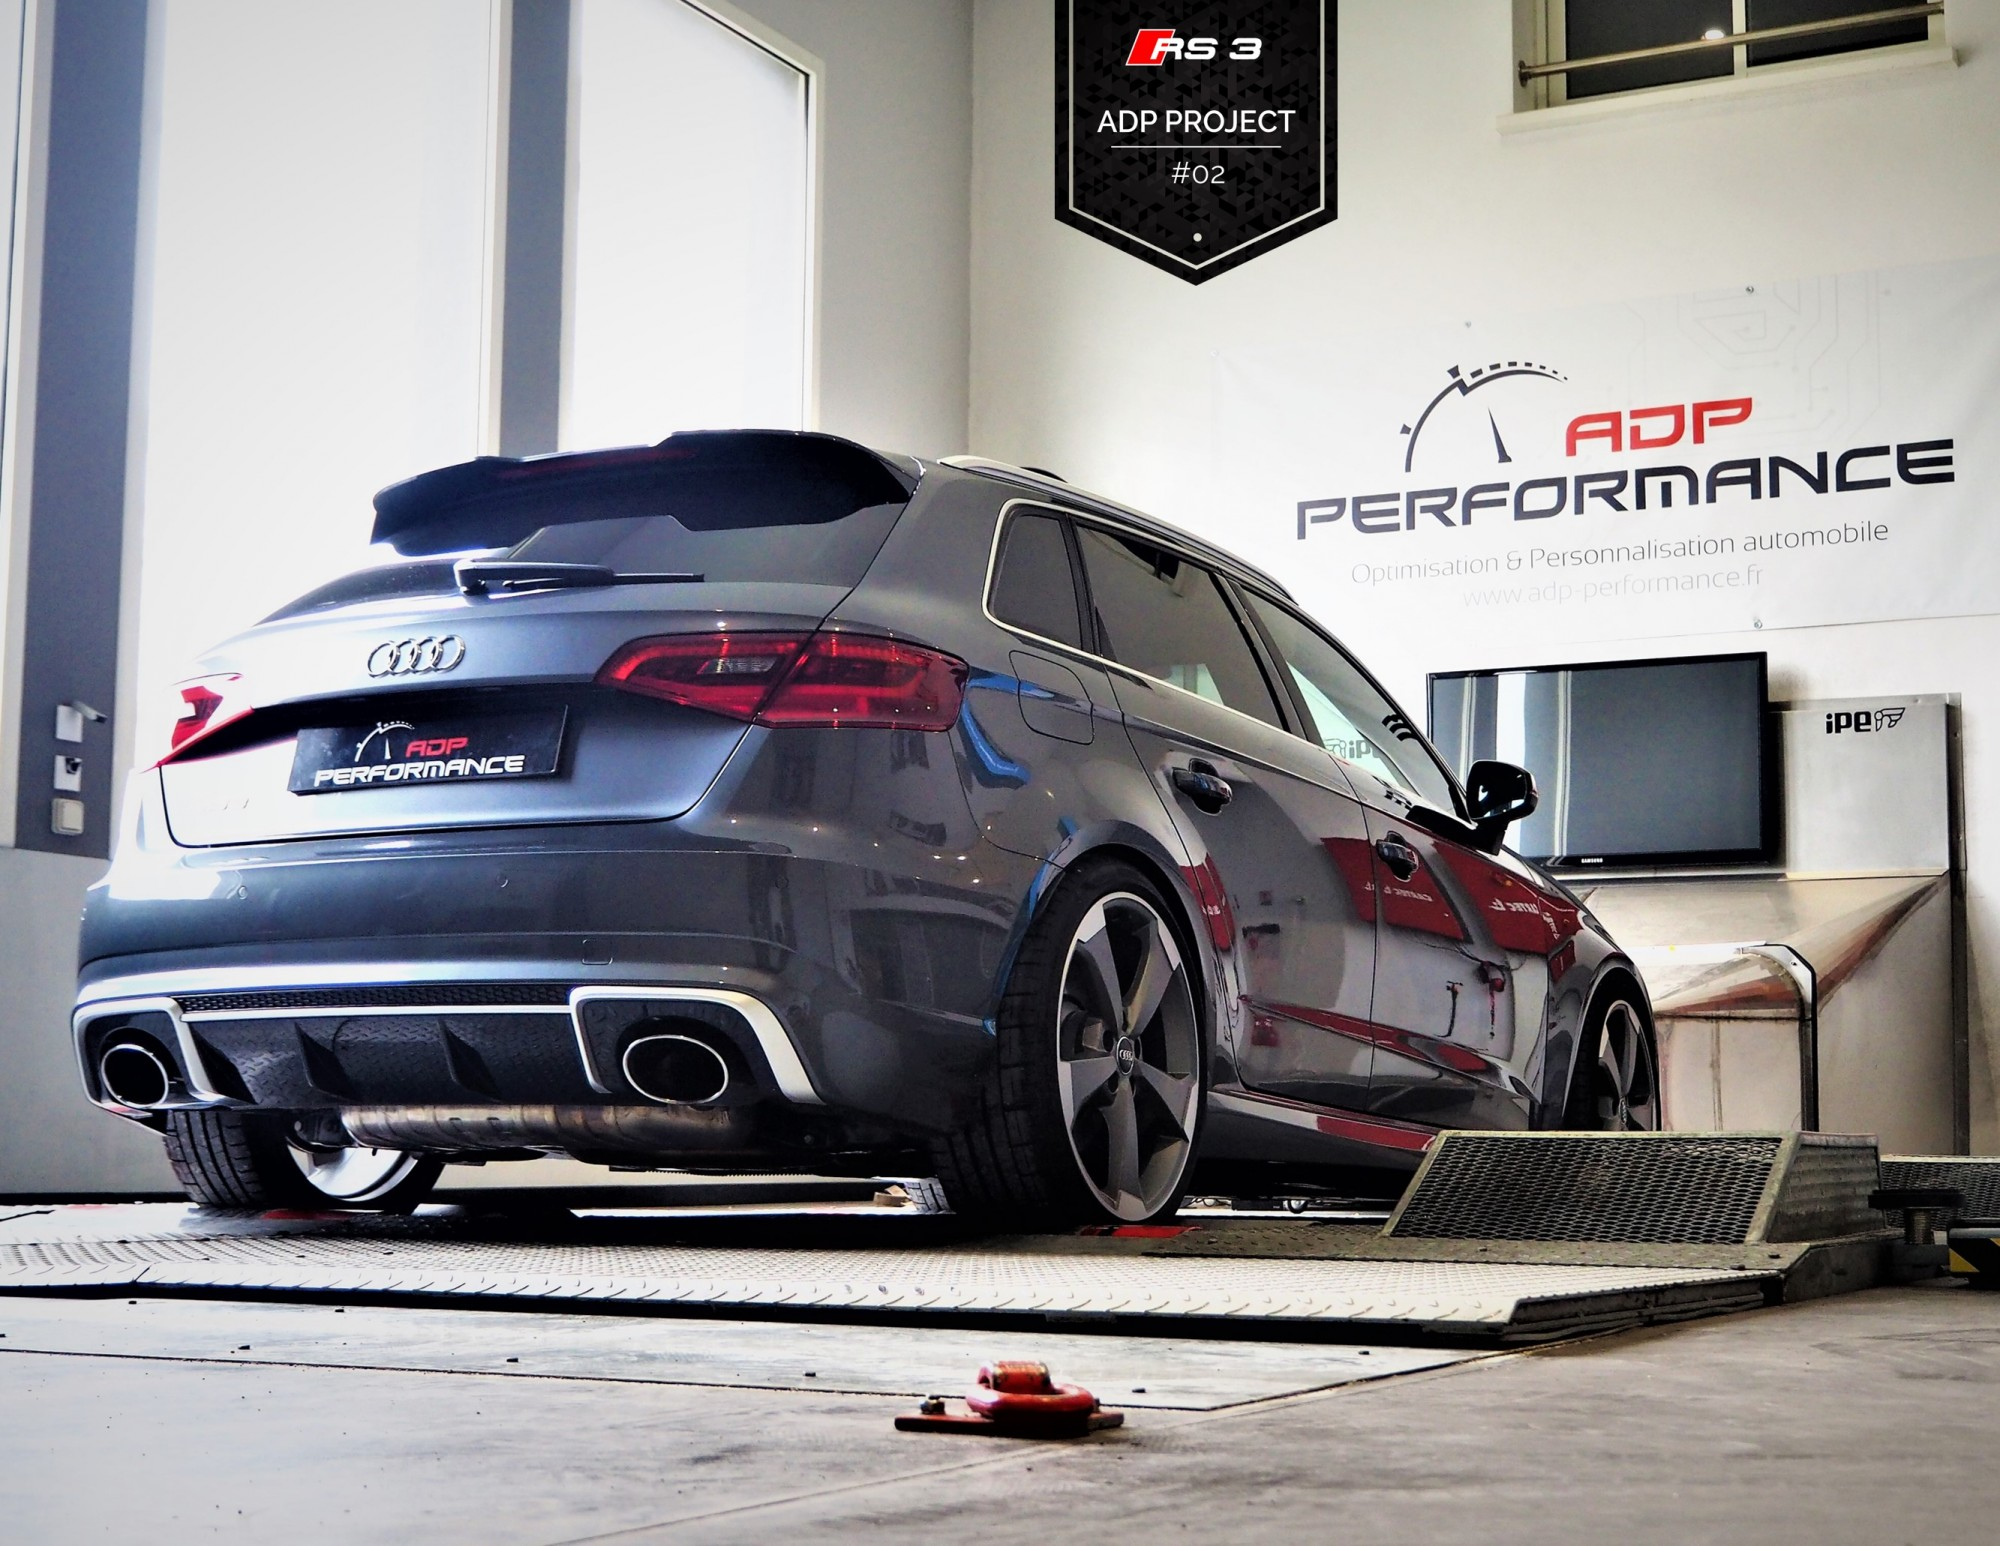 audi rs3 adp project 02 le stage 1 actualites reprogrammation auto sur marseille et. Black Bedroom Furniture Sets. Home Design Ideas